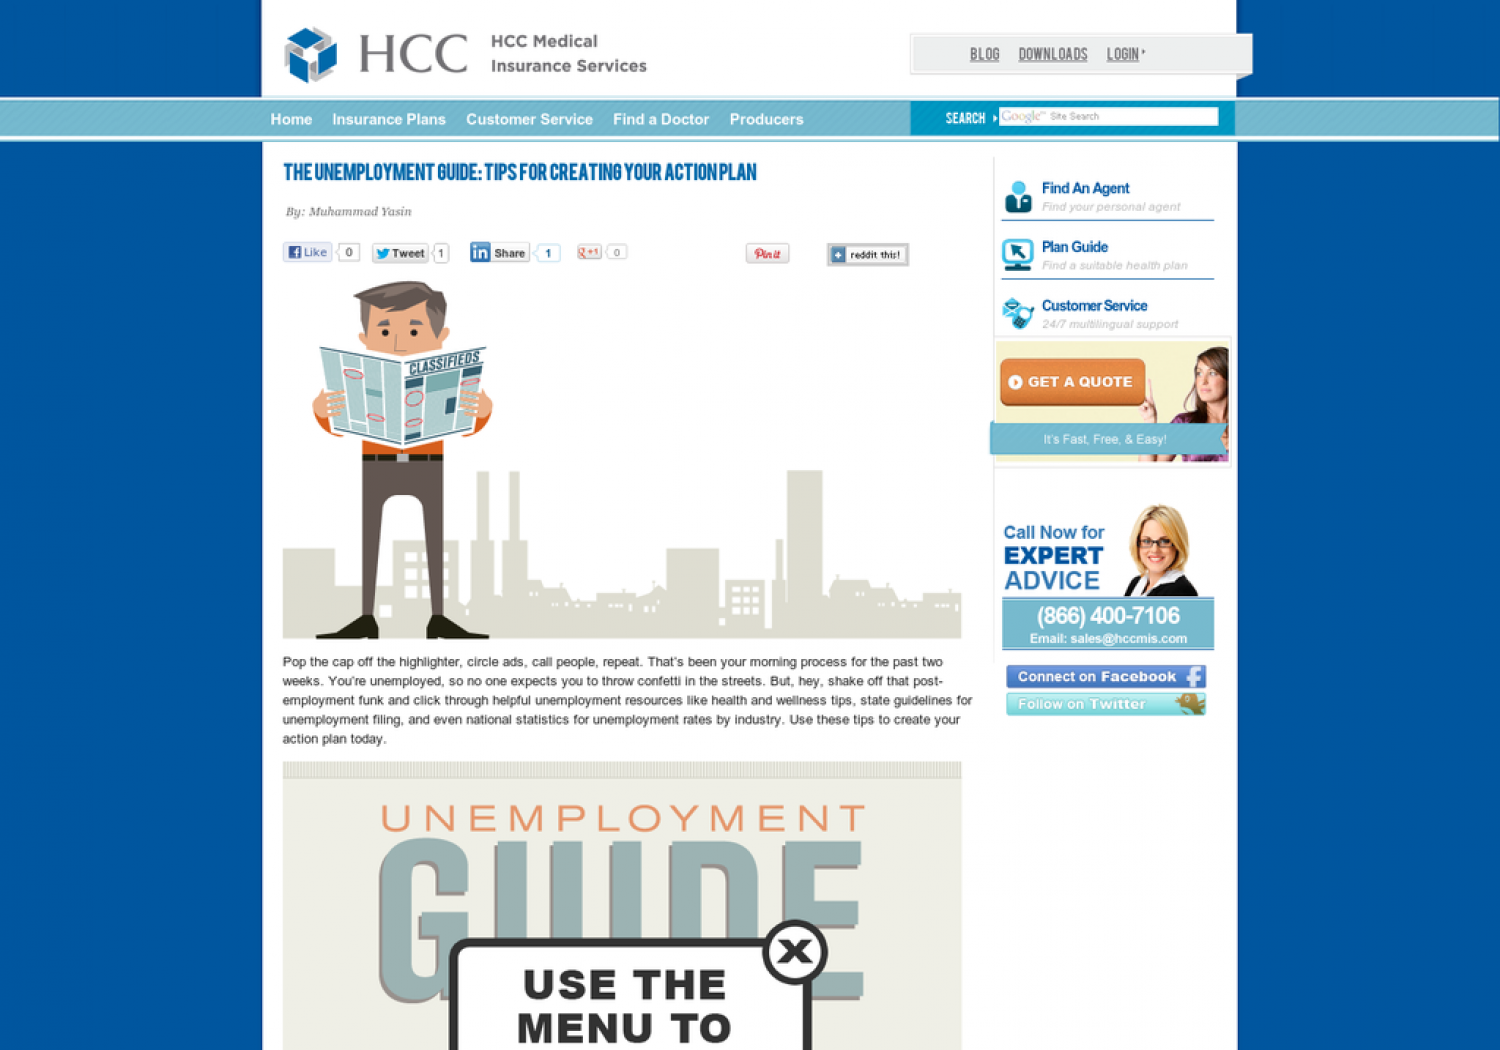 What To Do When Unemployed Infographic